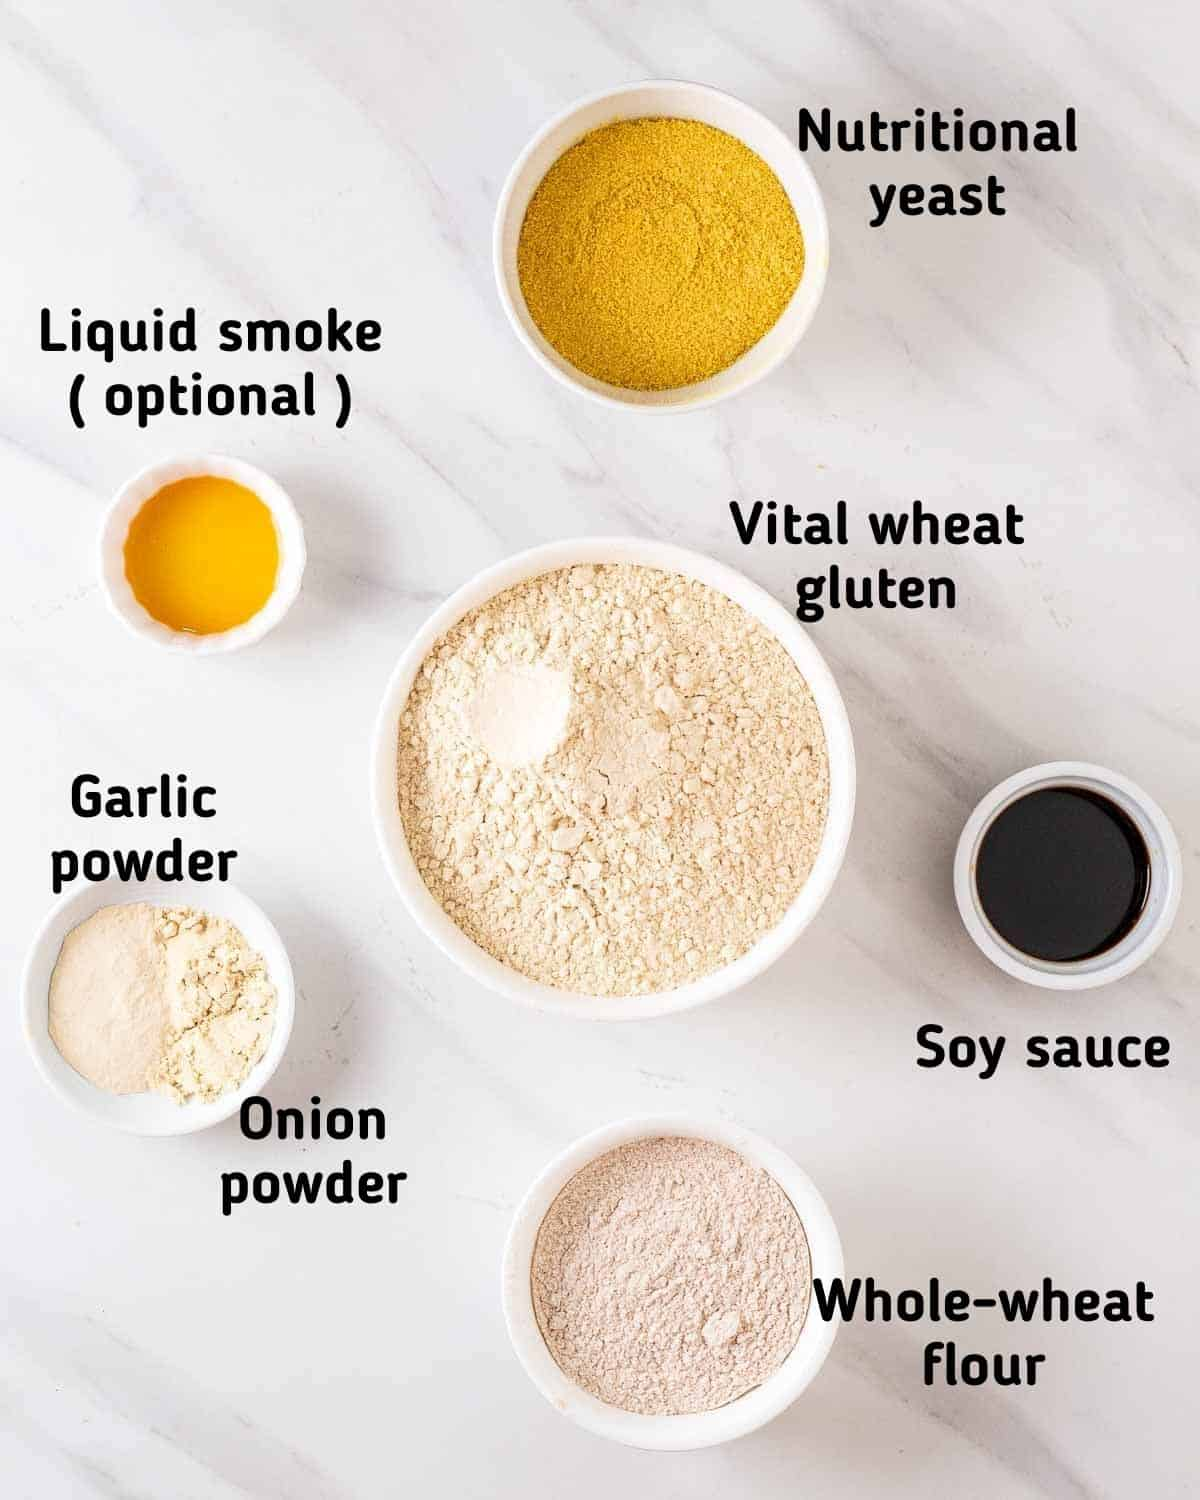 Ingredients needed to make this recipe like nutritional yeast, liquid smoke, vital wheat gluten, whole wheat flour, soy sauce, garlic and onion powder arranged on a white background.